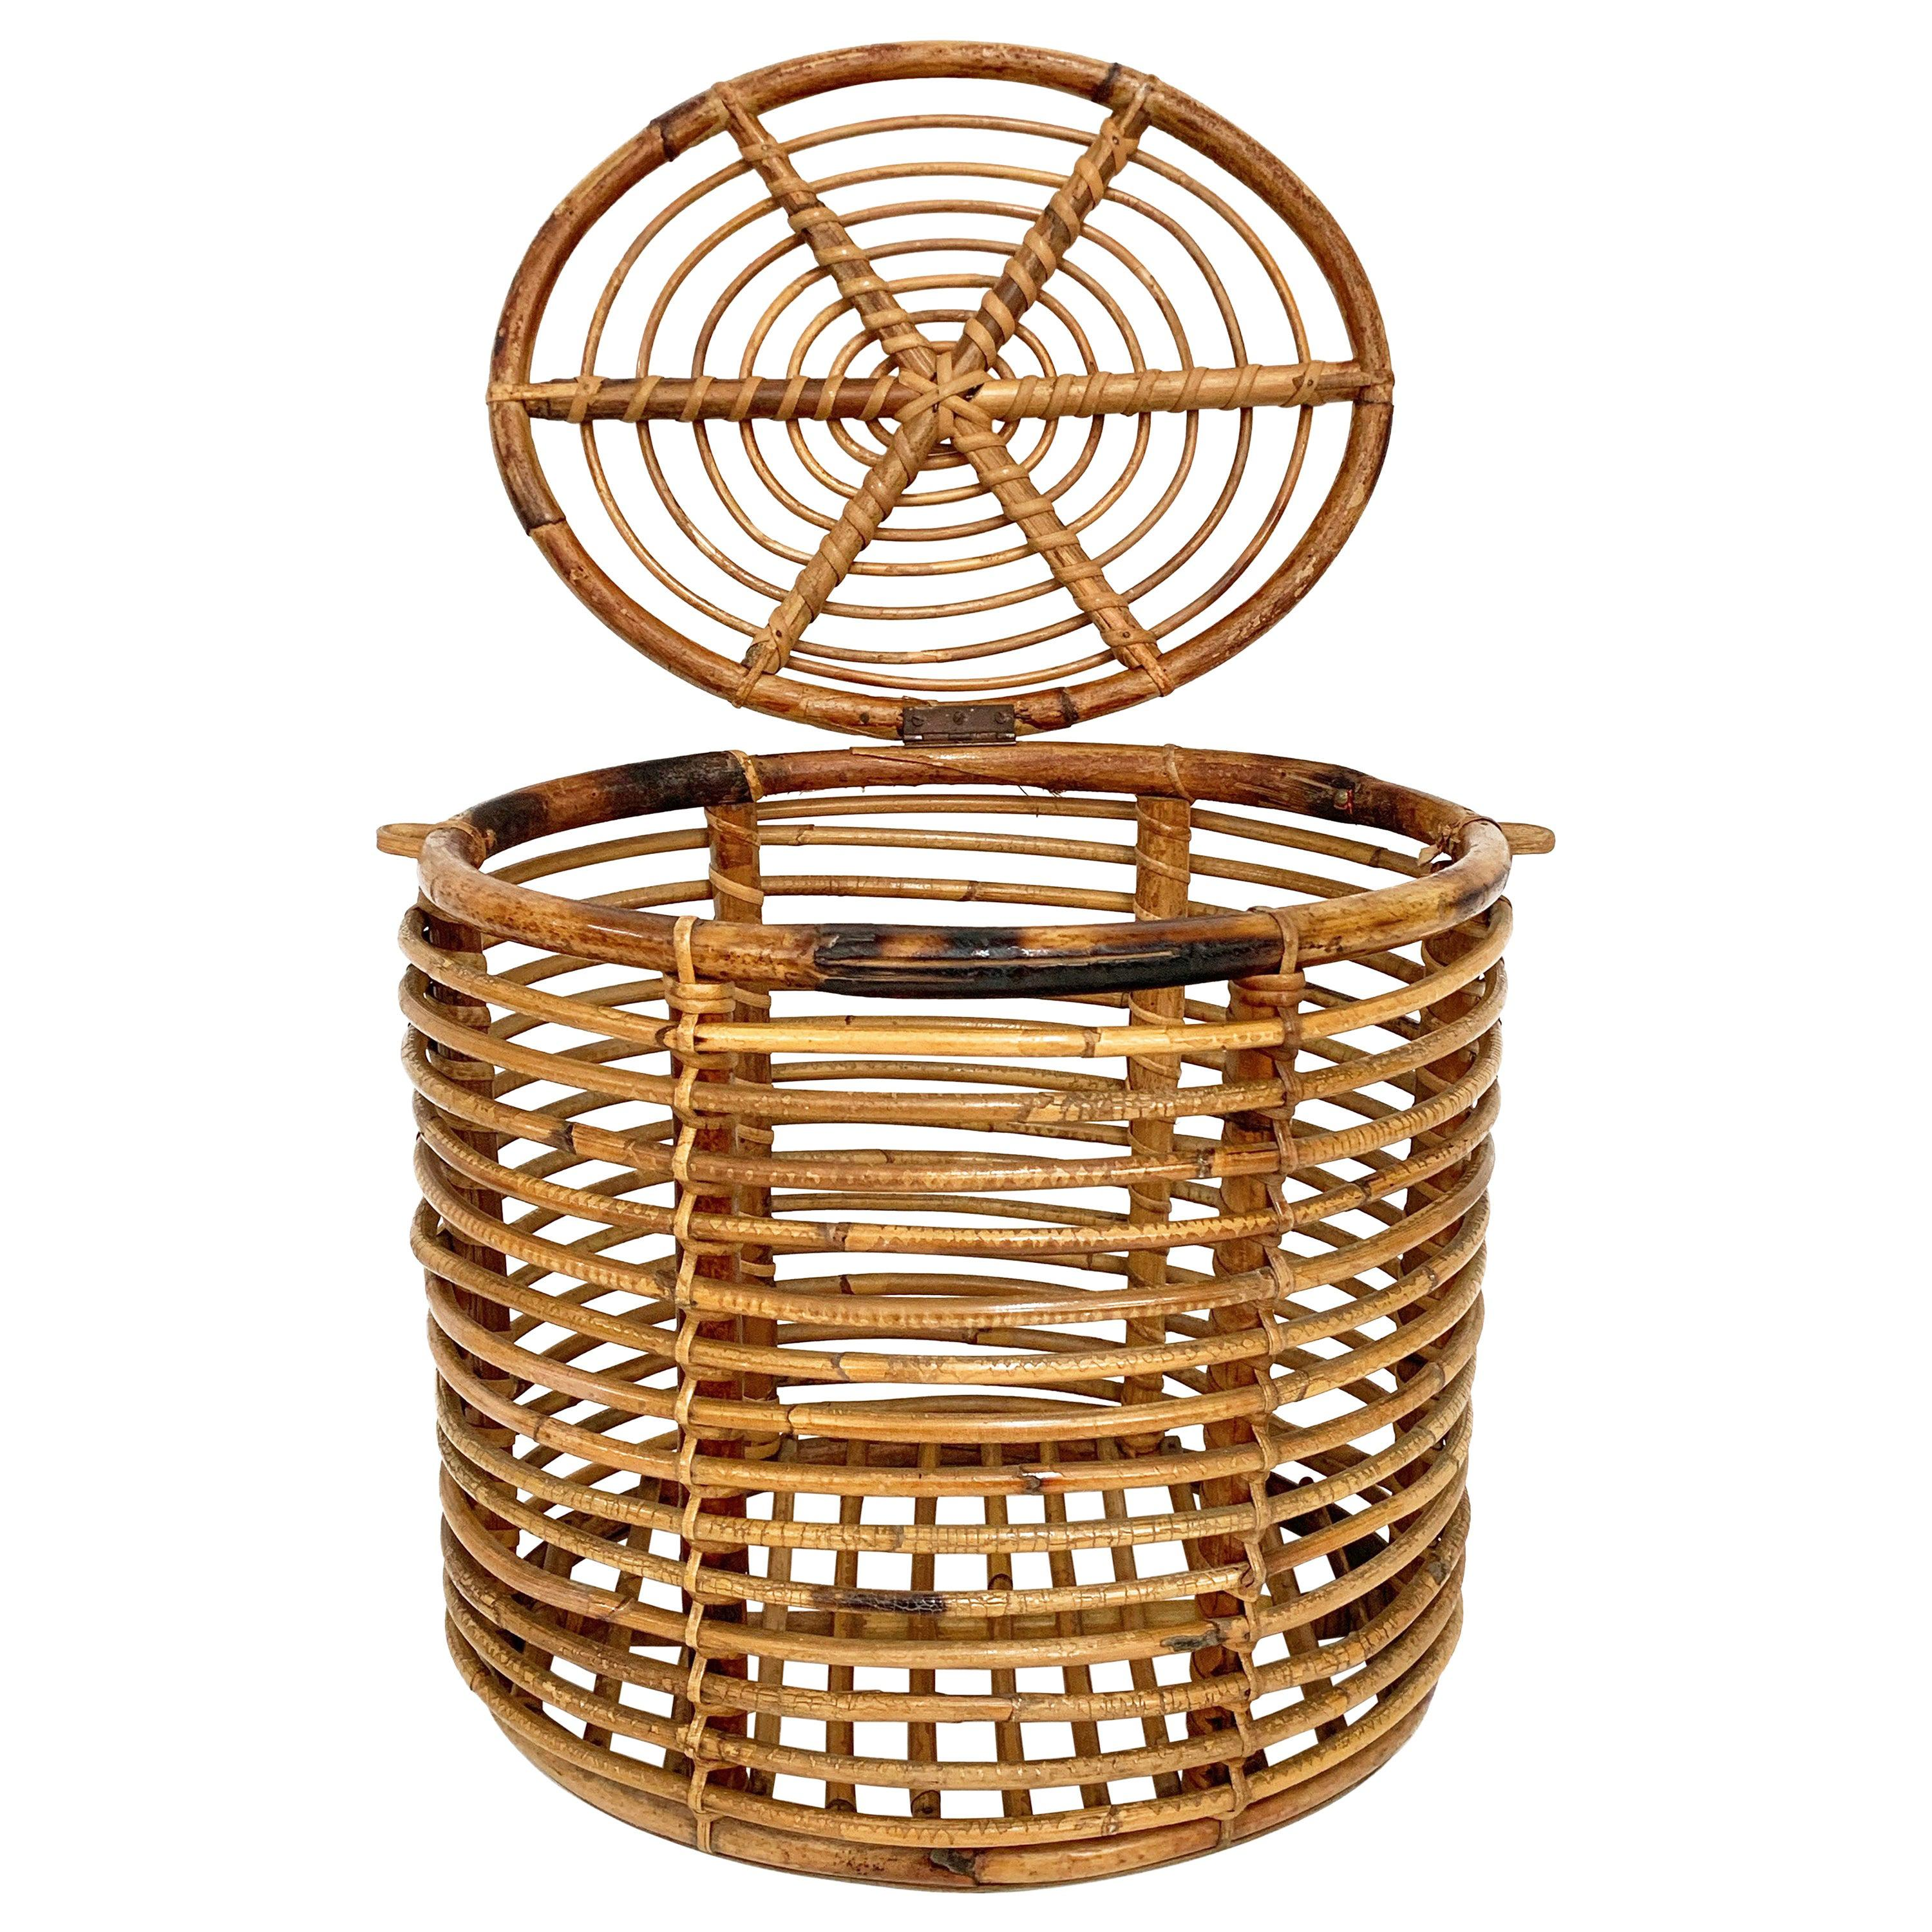 Midcentury French Riviera Bamboo and Rattan Oval Italian Basket, 1950s